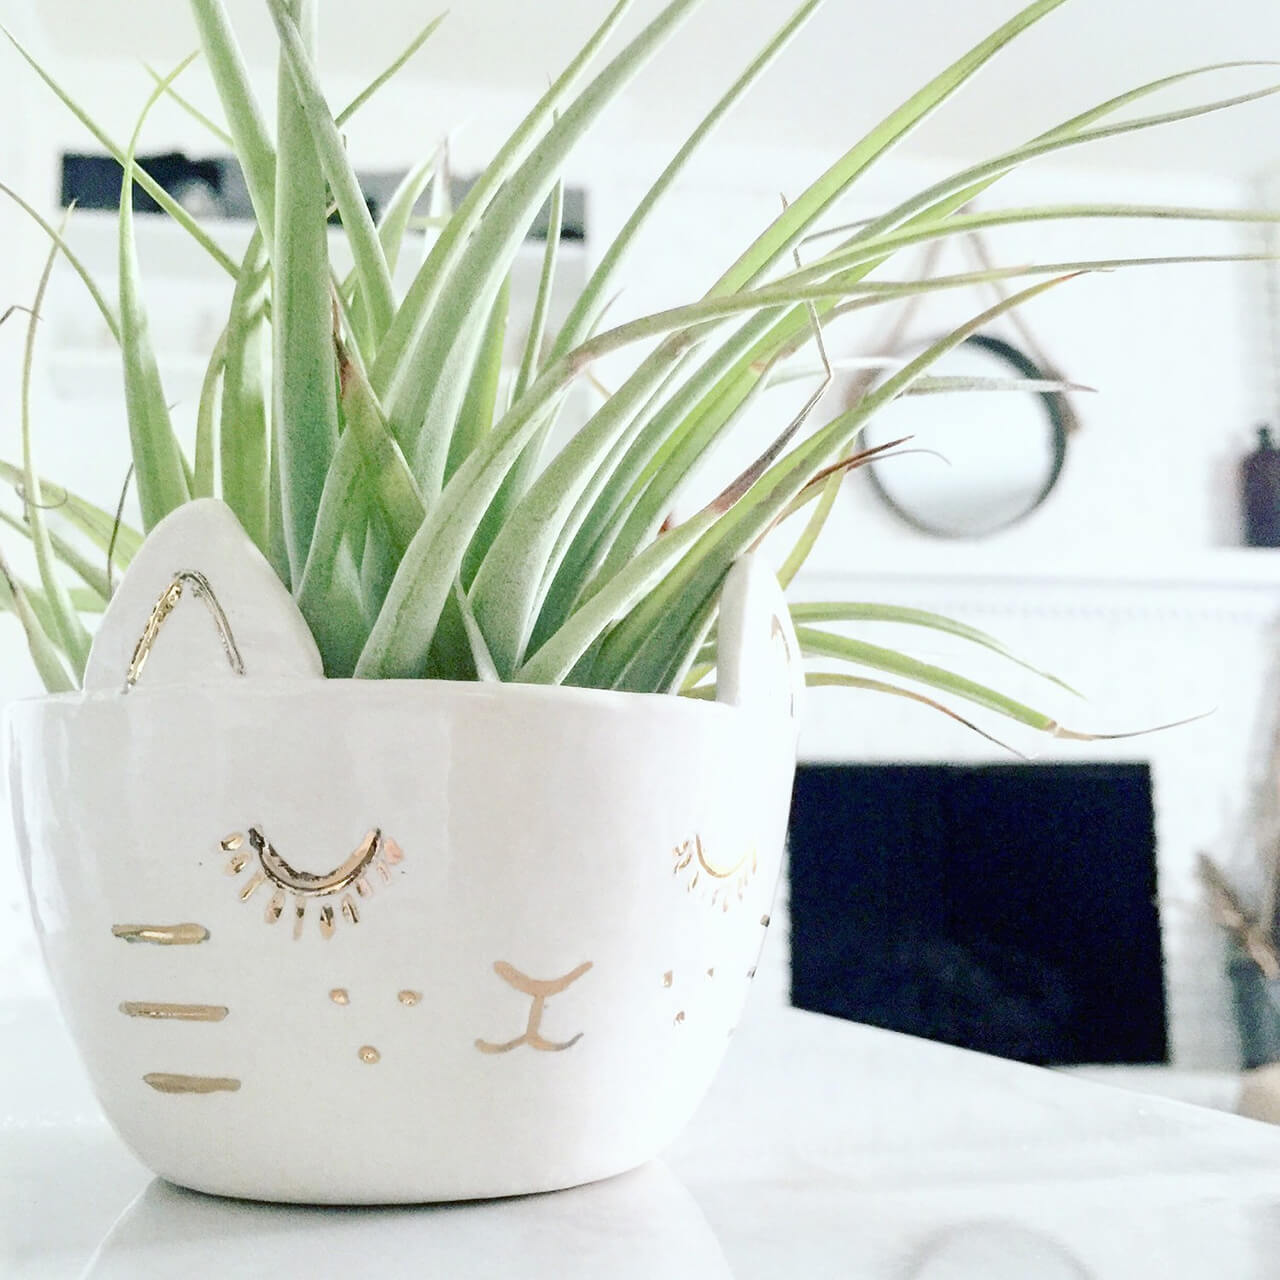 Sleeping Cat Planter with Golden Accents